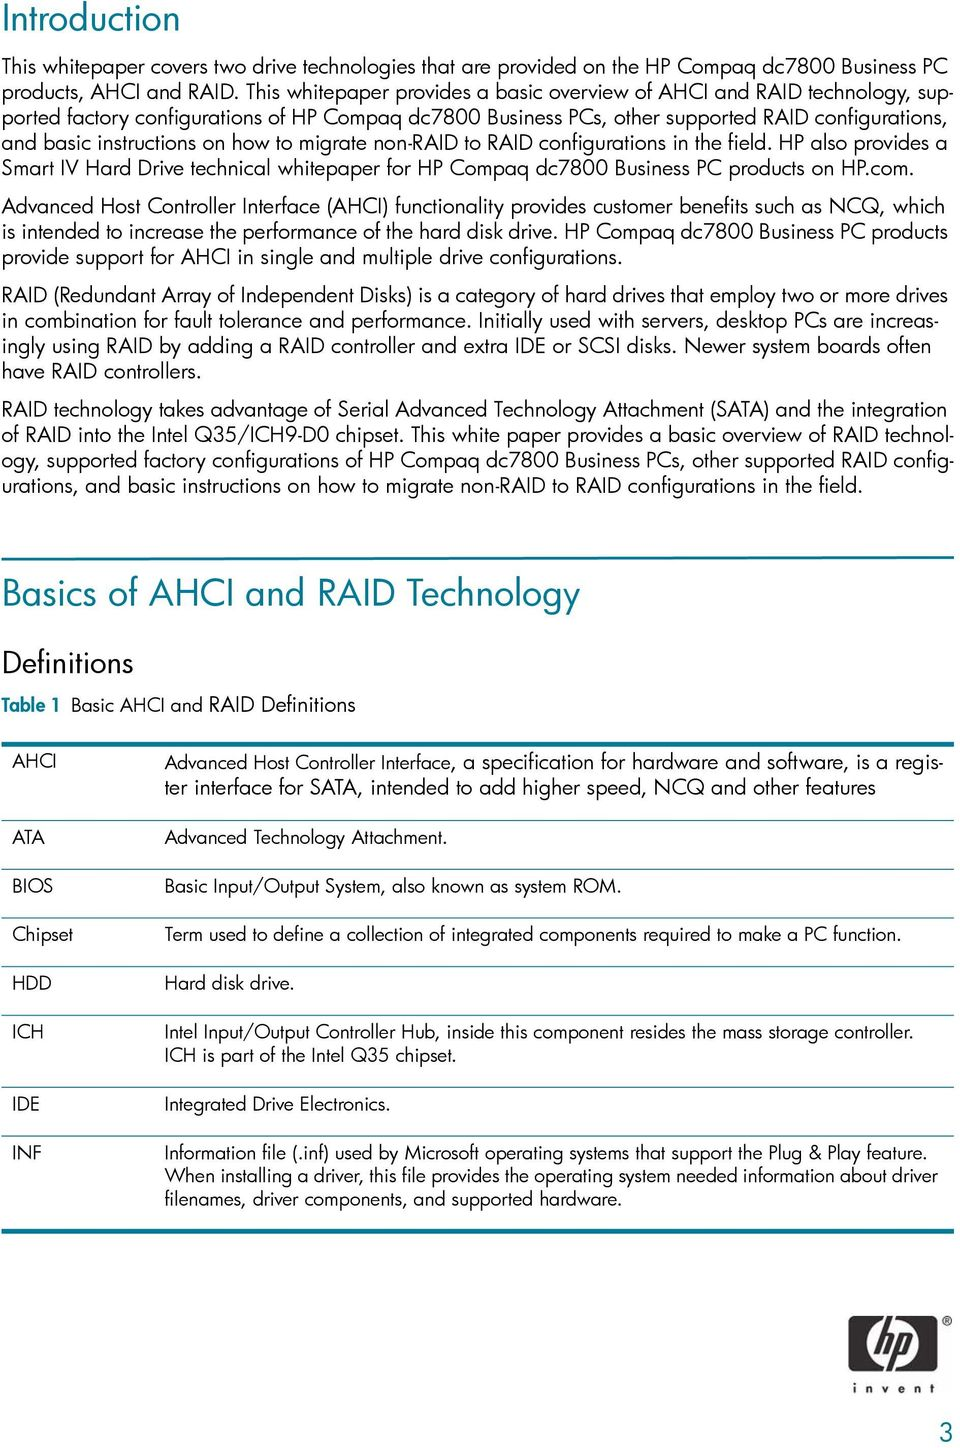 Advanced Host Controller Interface (AHCI) and Redundant Array of